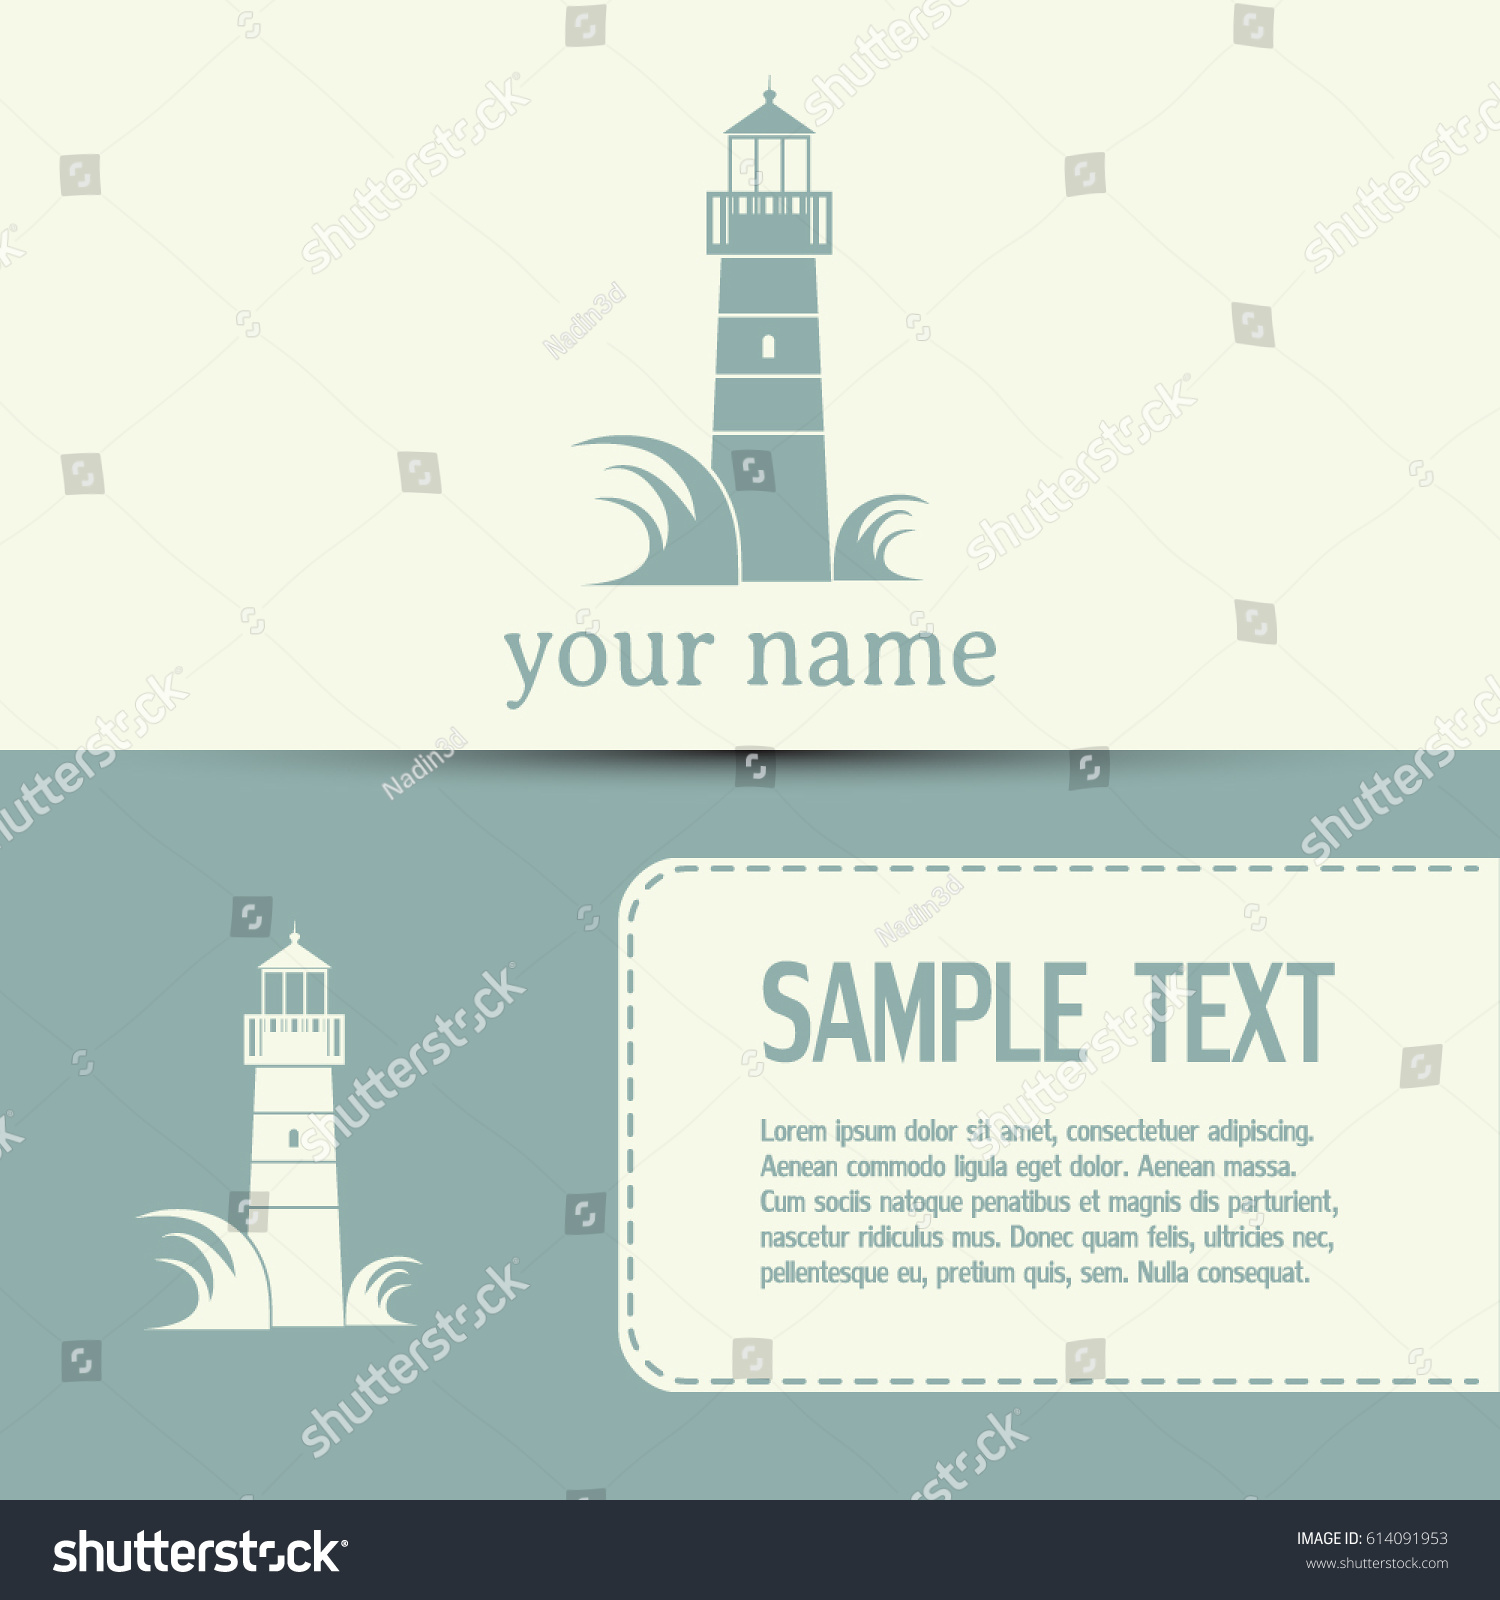 Business Cards Designvector Icon Lighthouse Stock Vector 614091953 ...